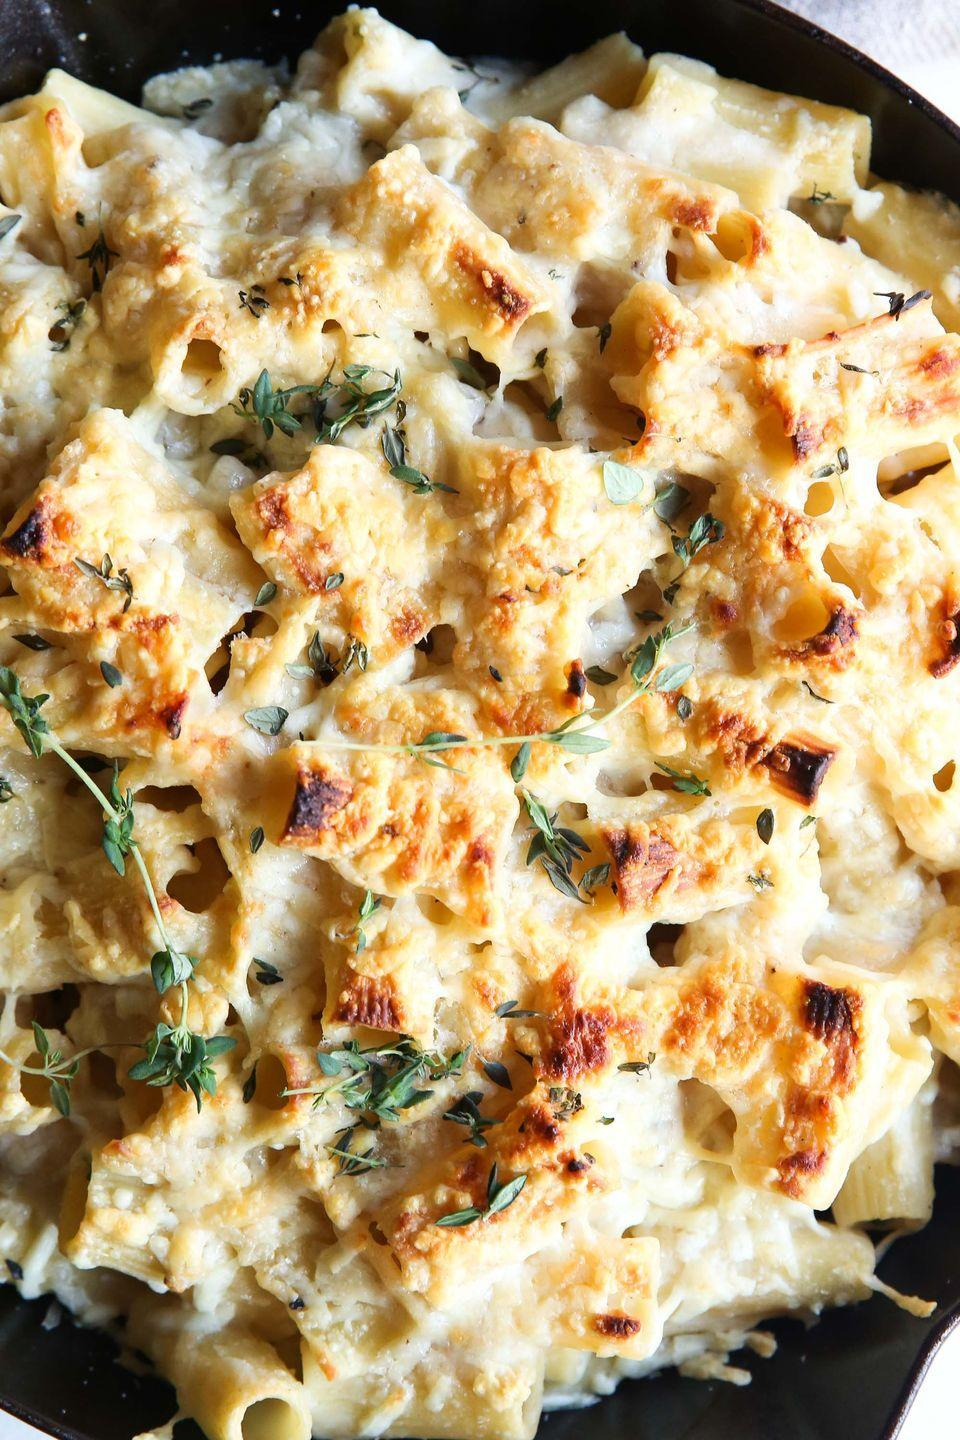 """<p>When it's cold outside, creamy pastas are the only thing that'll do.</p><p>Get the recipe from <a href=""""/cooking/recipe-ideas/recipes/a50893/baked-creamy-garlic-rigatoni-recipe/"""" data-ylk=""""slk:Delish"""" class=""""link rapid-noclick-resp"""">Delish</a>.</p>"""